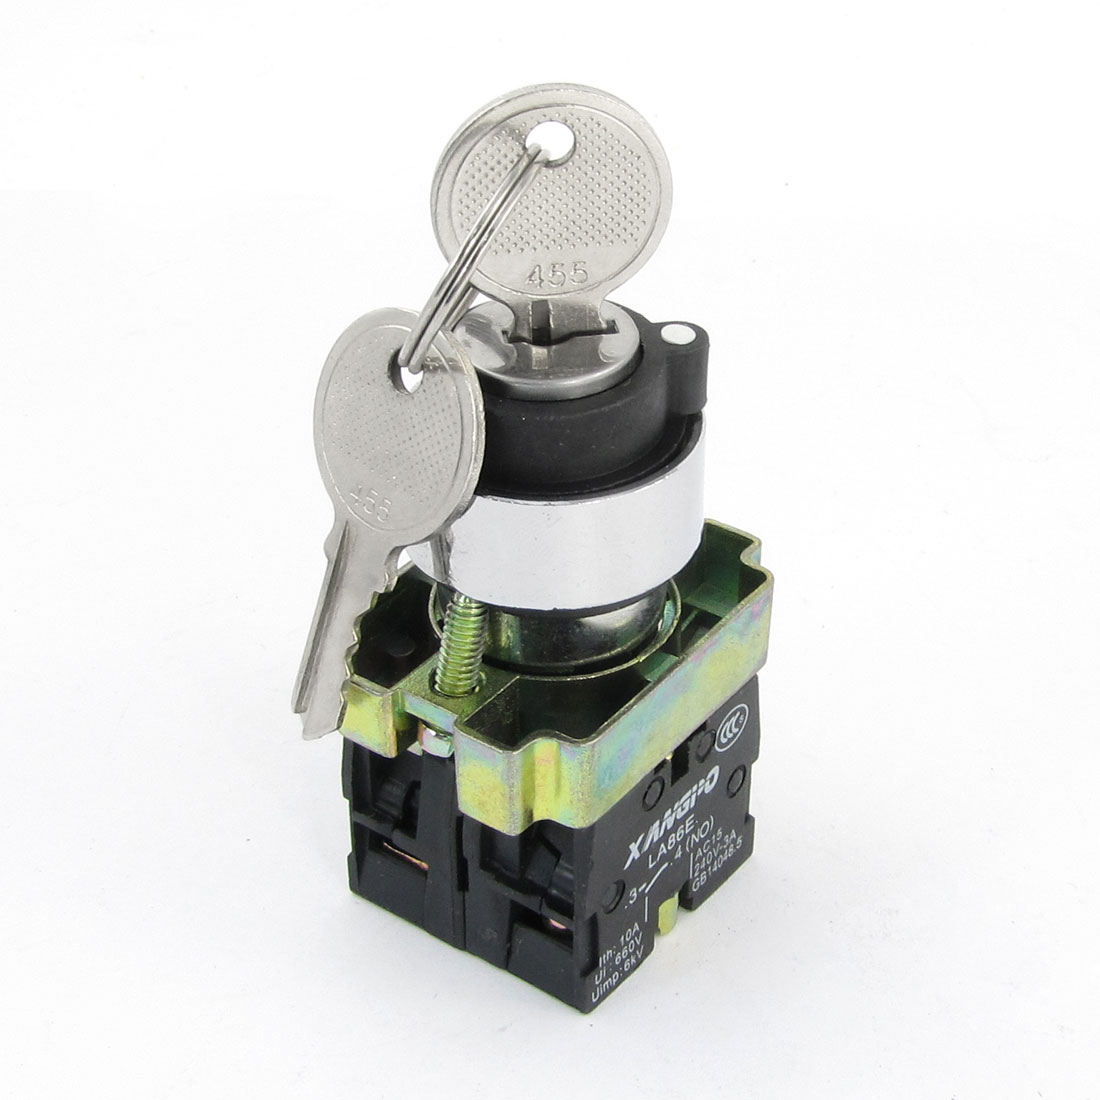 AC 240V 3A 1NO 1NC 4-Terminal Key Rotary Starting Lock Push Button Switch